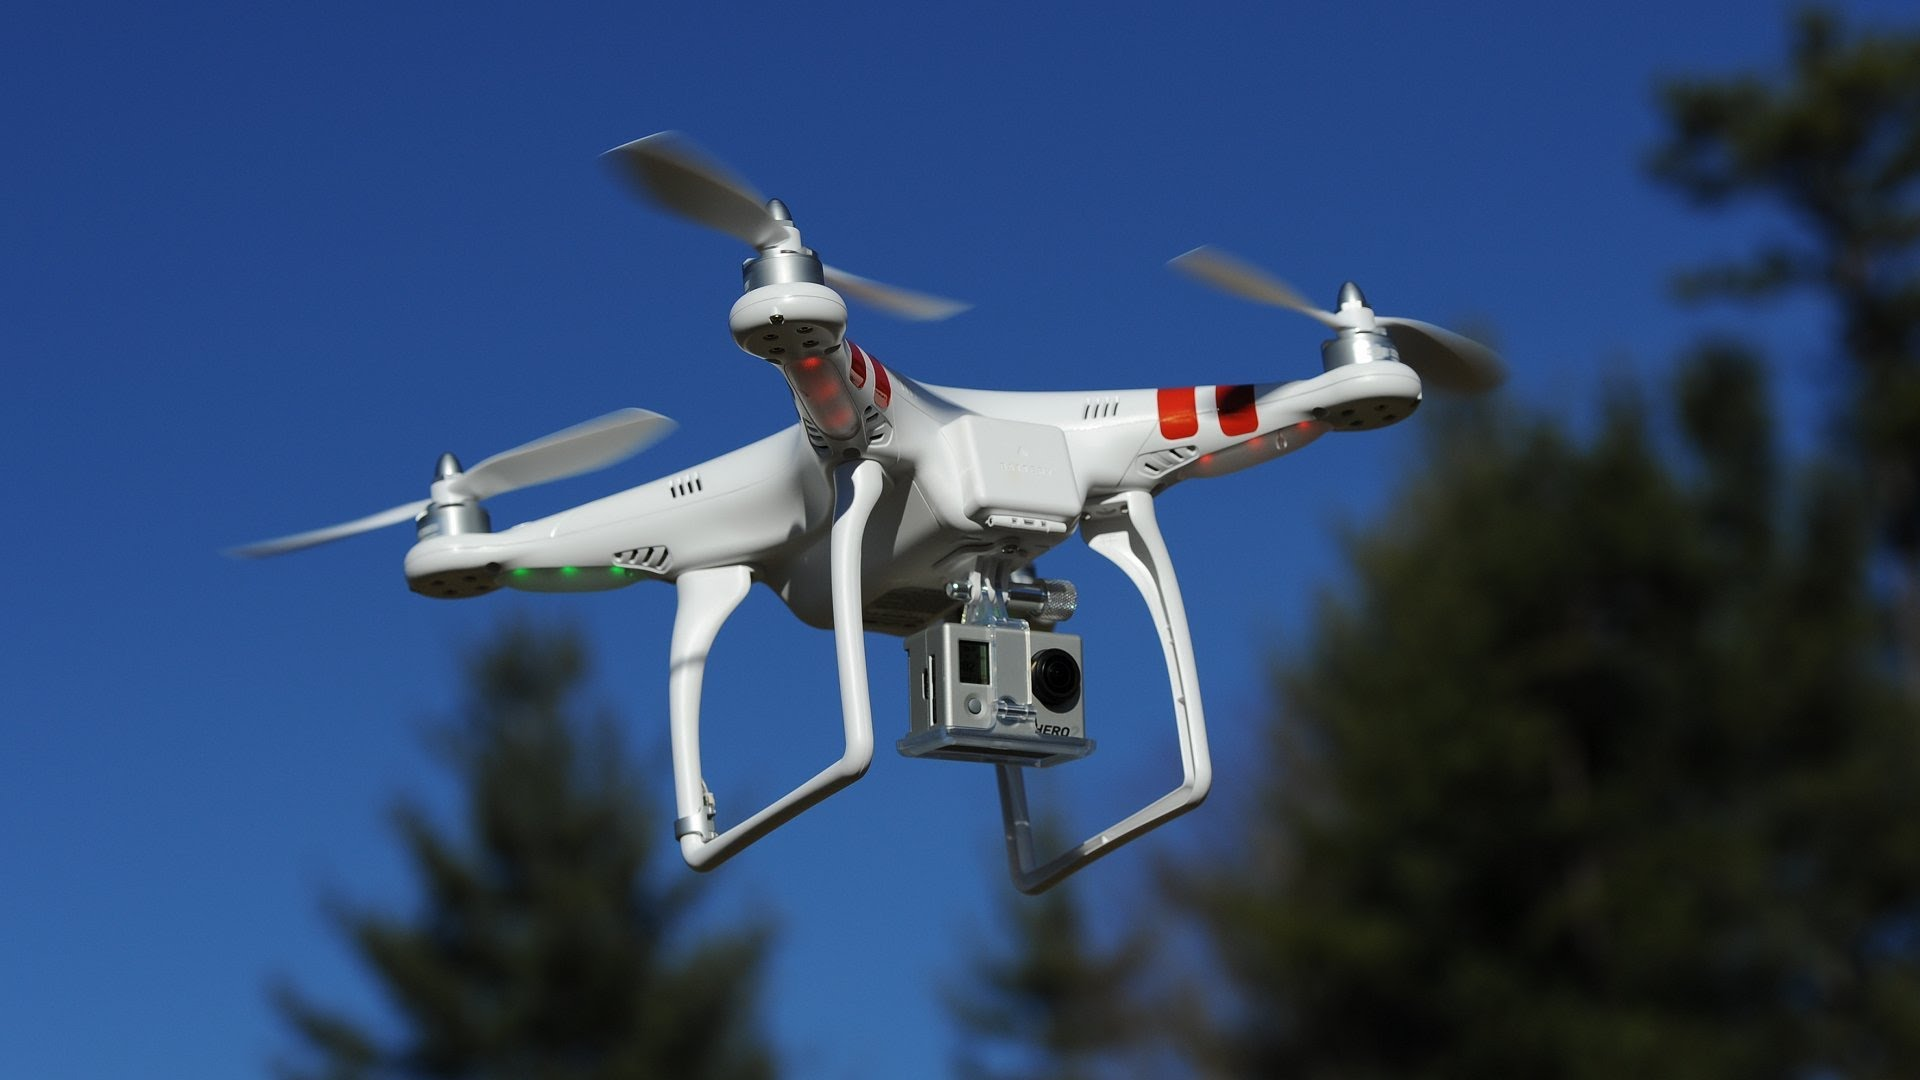 DJI-Phantom-2 gopro 飛行